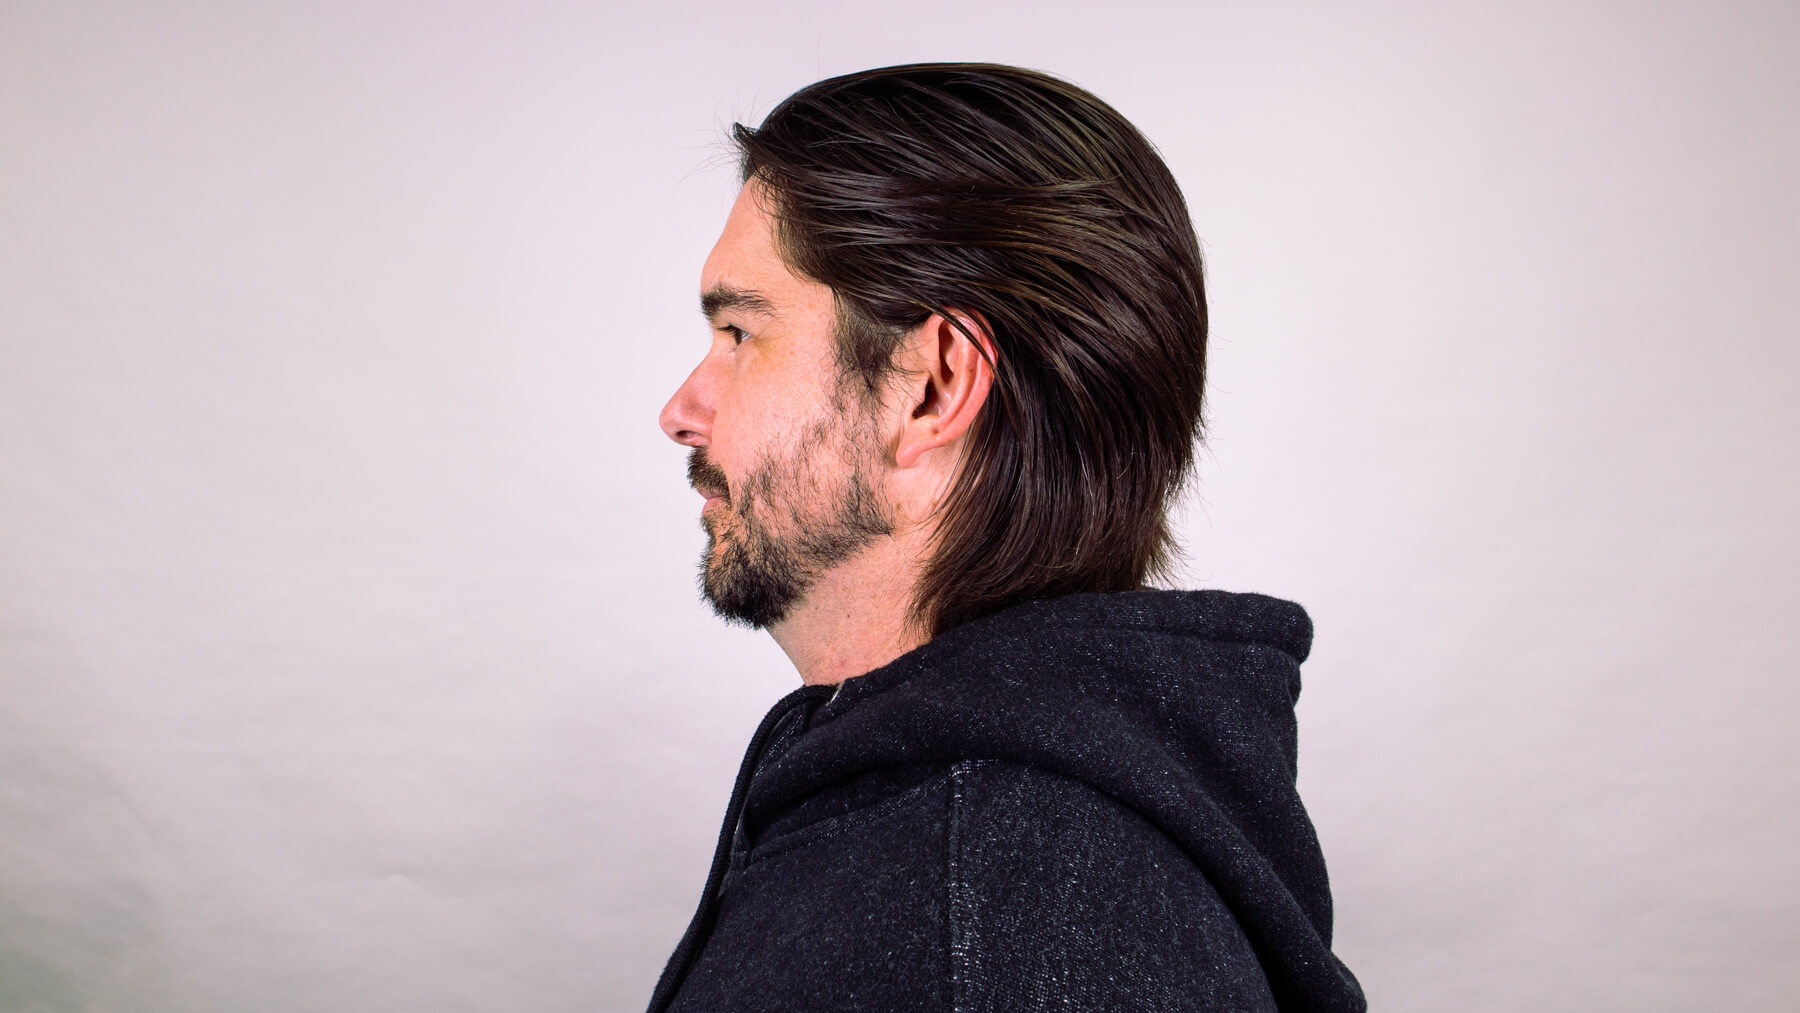 Brushed back awkward stage hairstyle side profile view